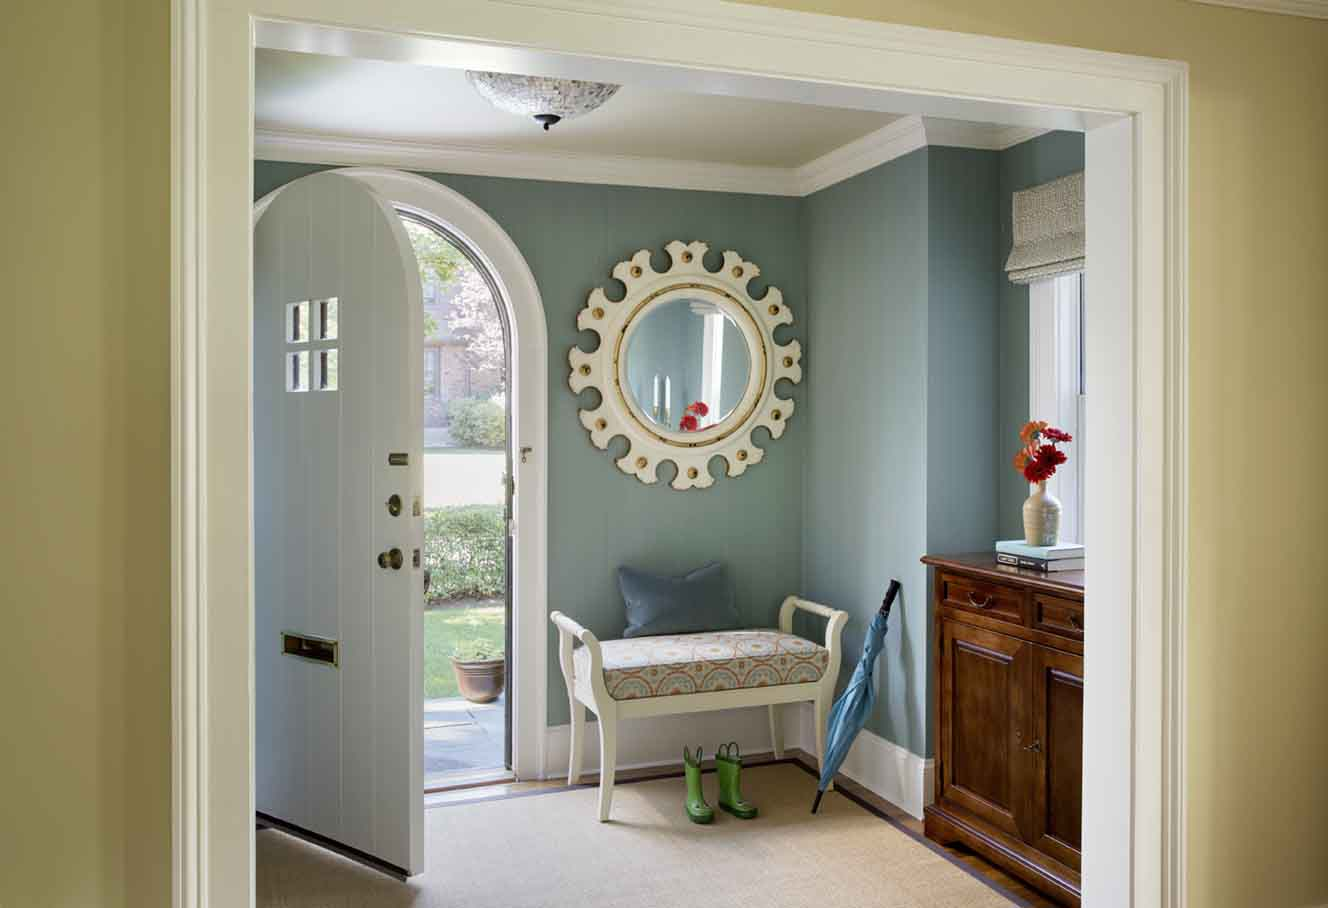 House Of Turquoise Guest Post Interiors For Families